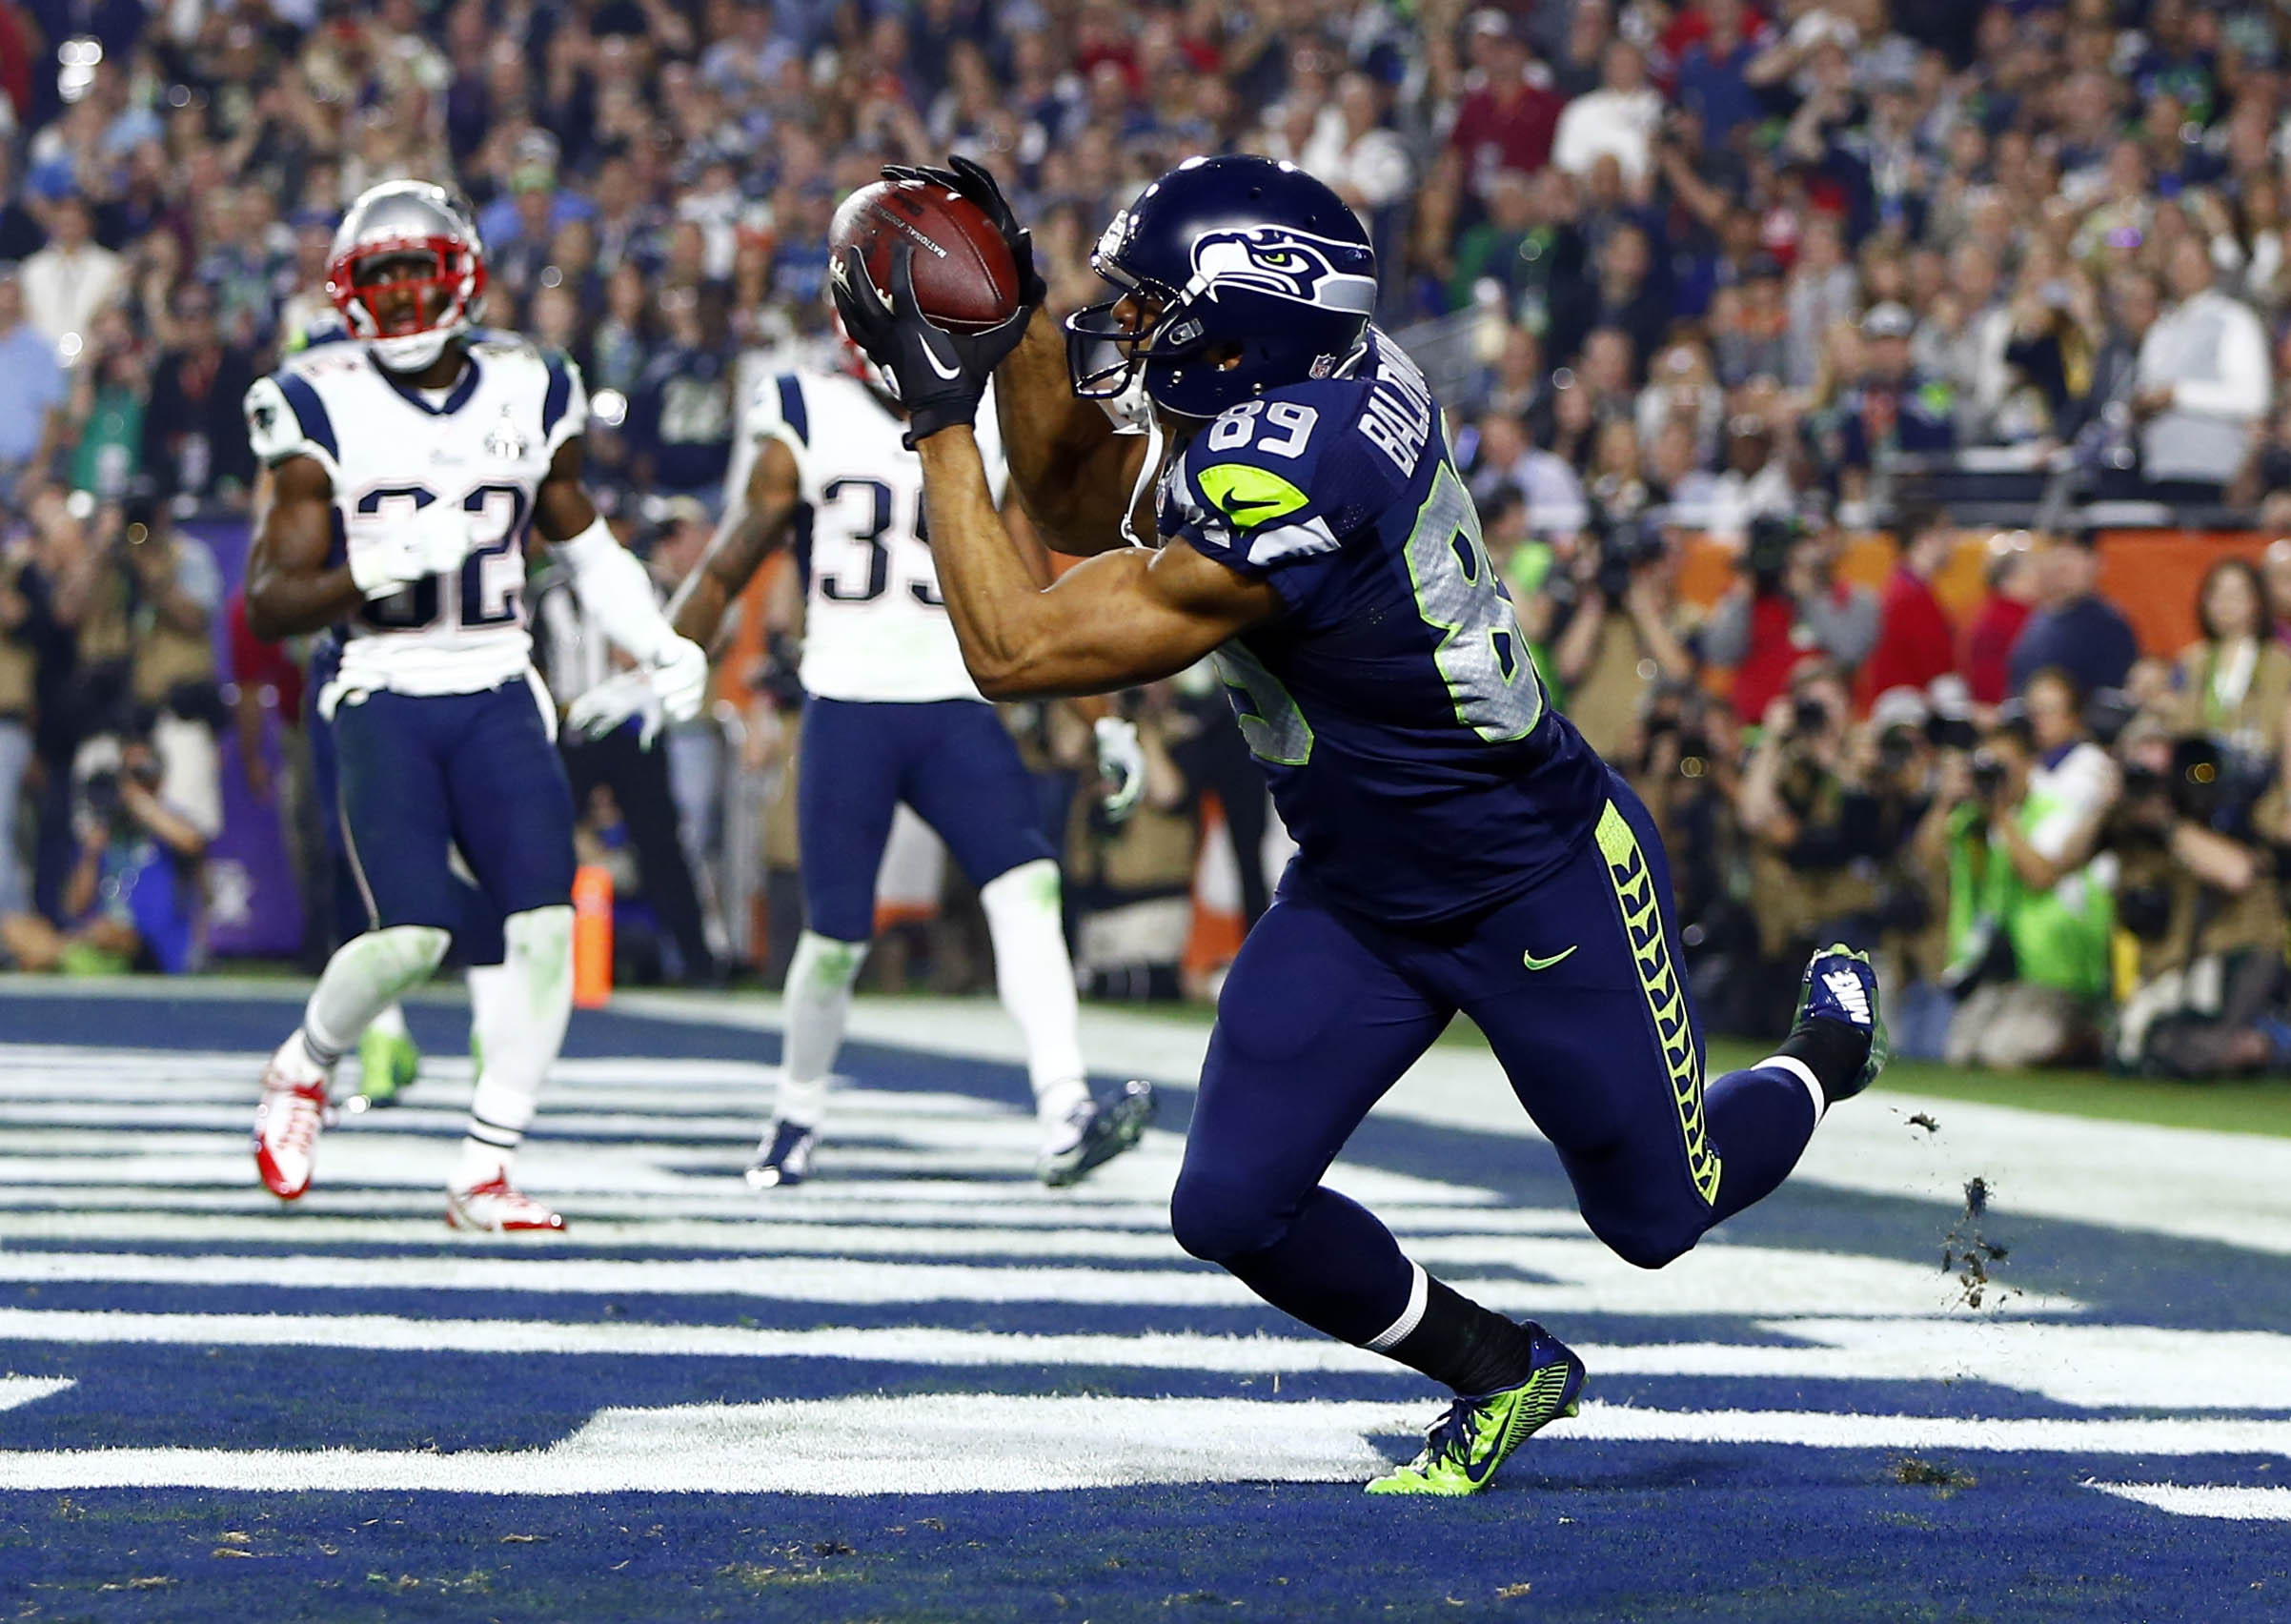 Doug Baldwin pretended to poop out a football at the Super Bowl because of Darrelle Revis